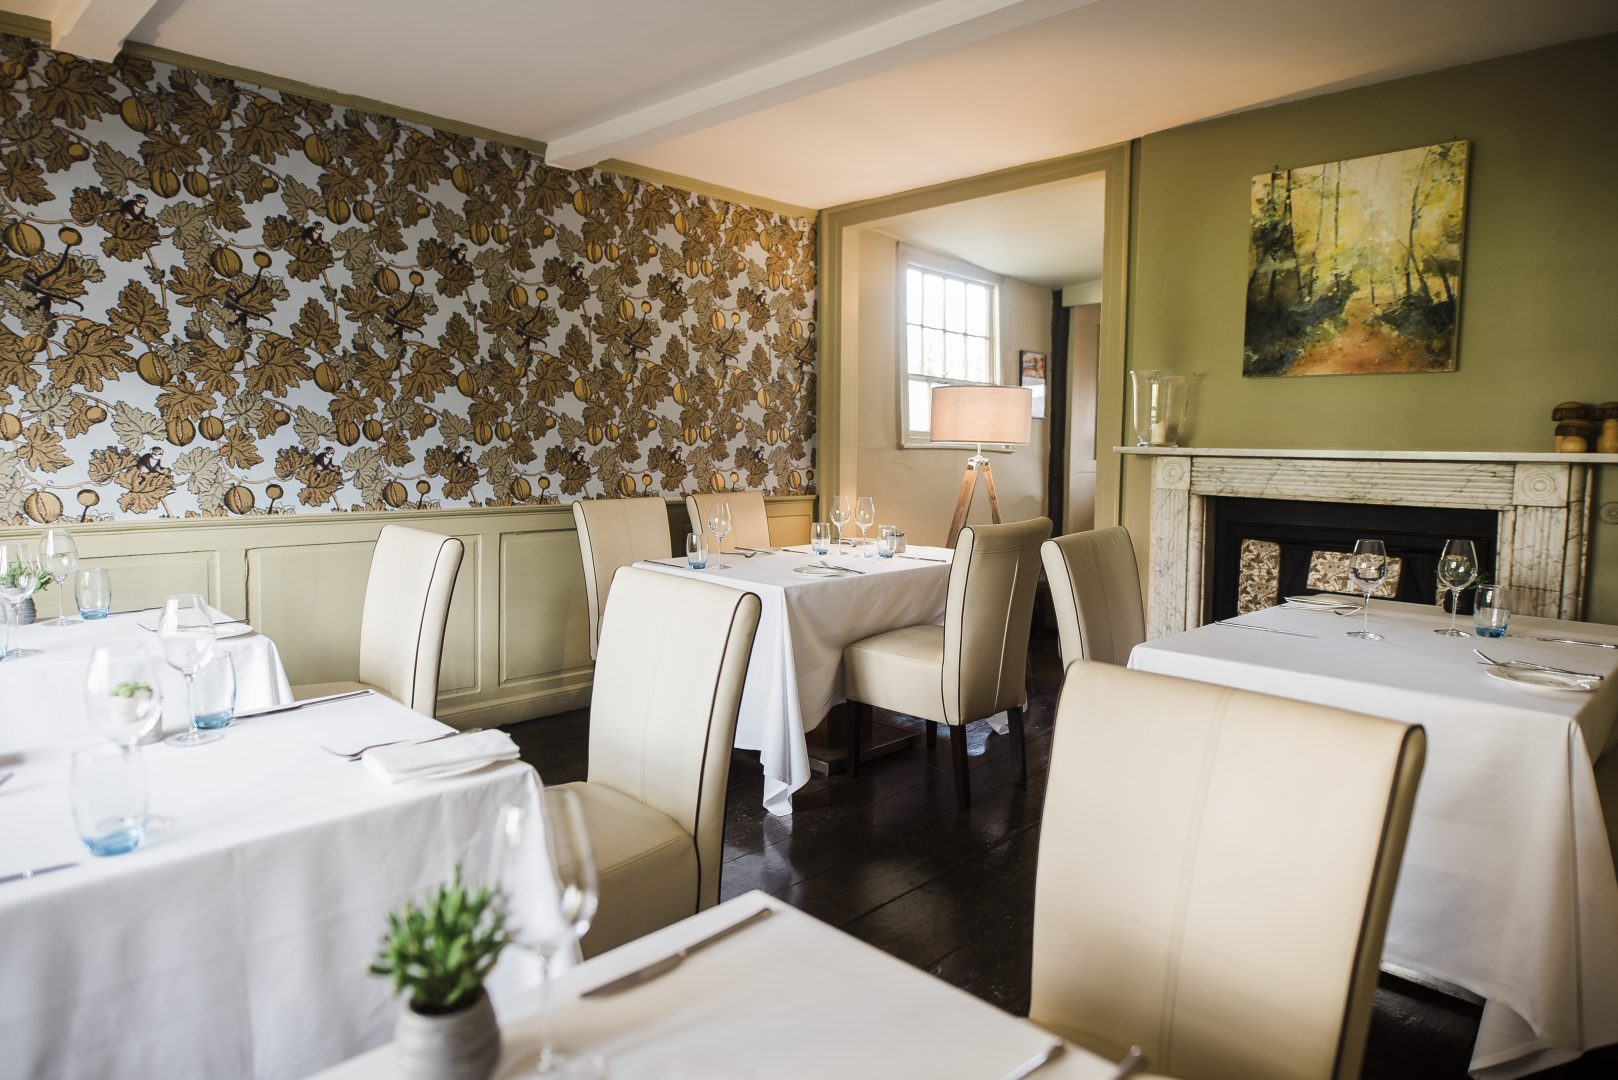 Dining room at Thackerays' restaurant with patterned wallpaper and historic fireplace features